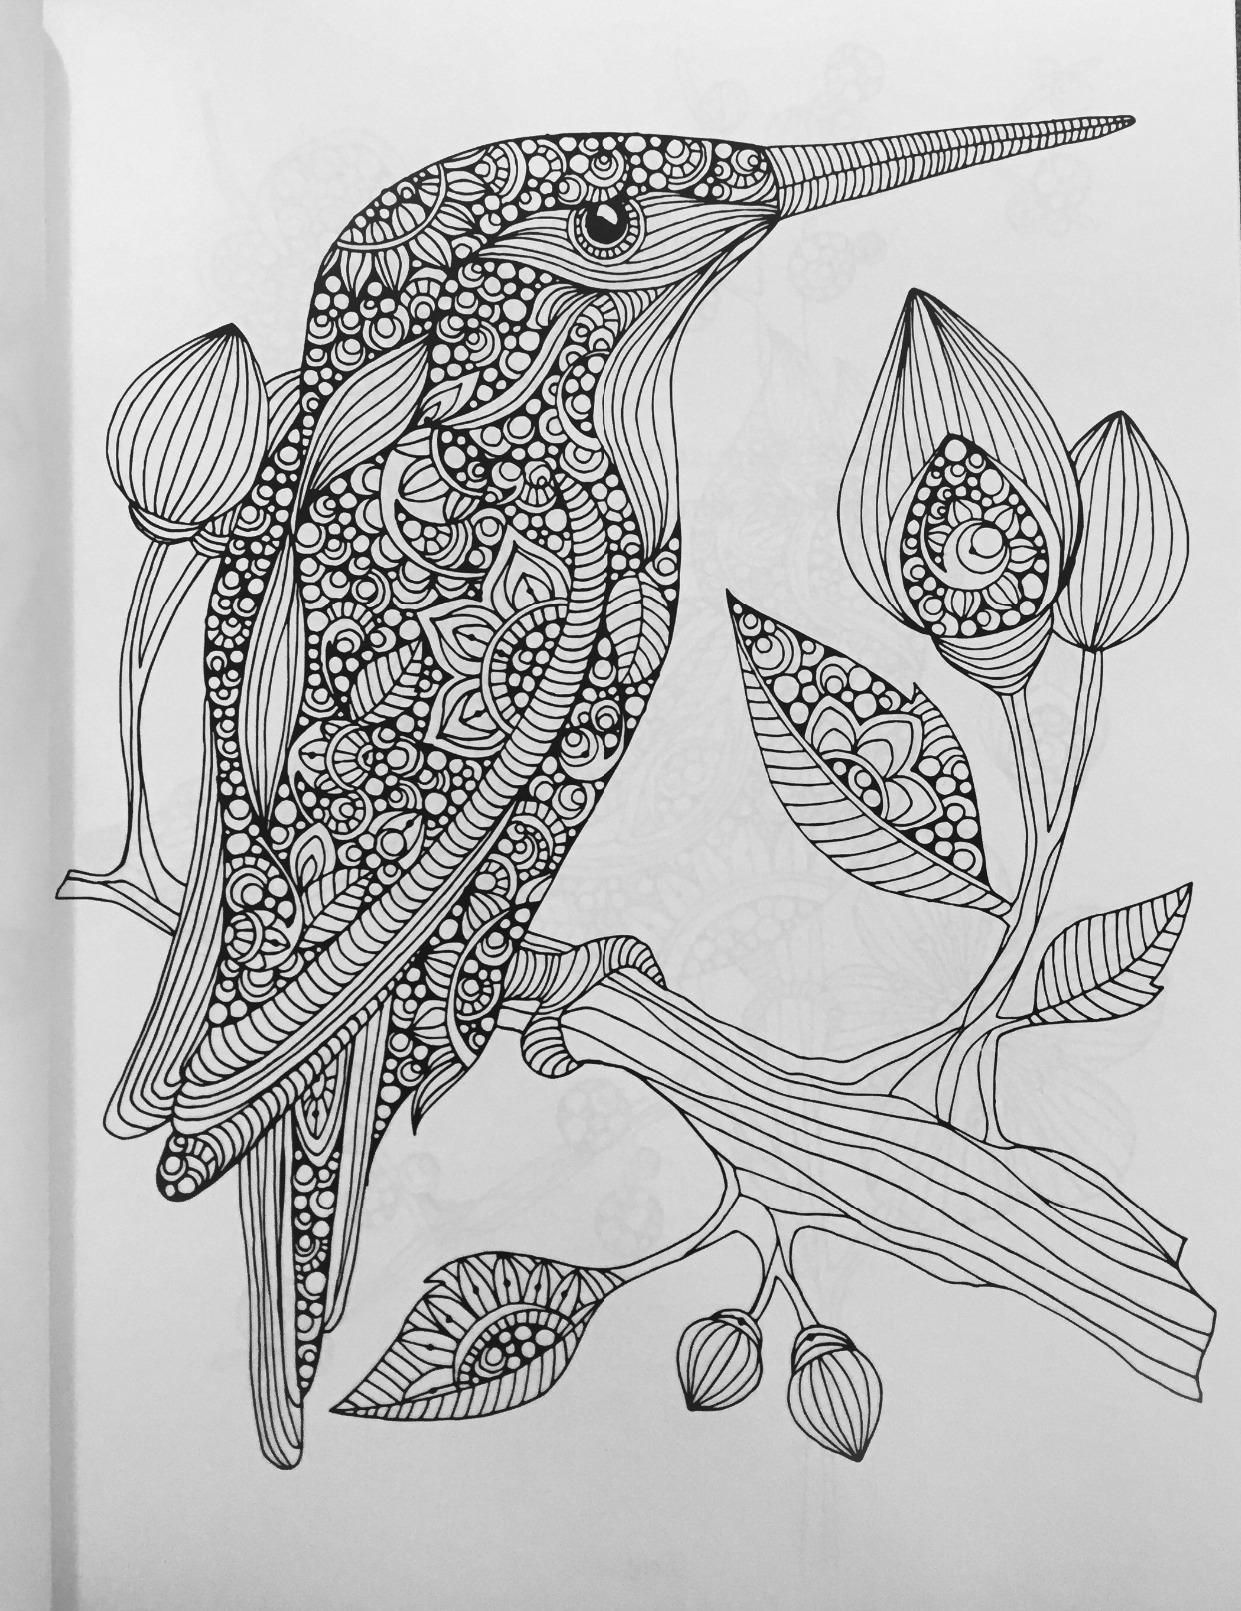 Amazon.com: Creative Coloring Birds: Art Activity Pages to Relax and ...